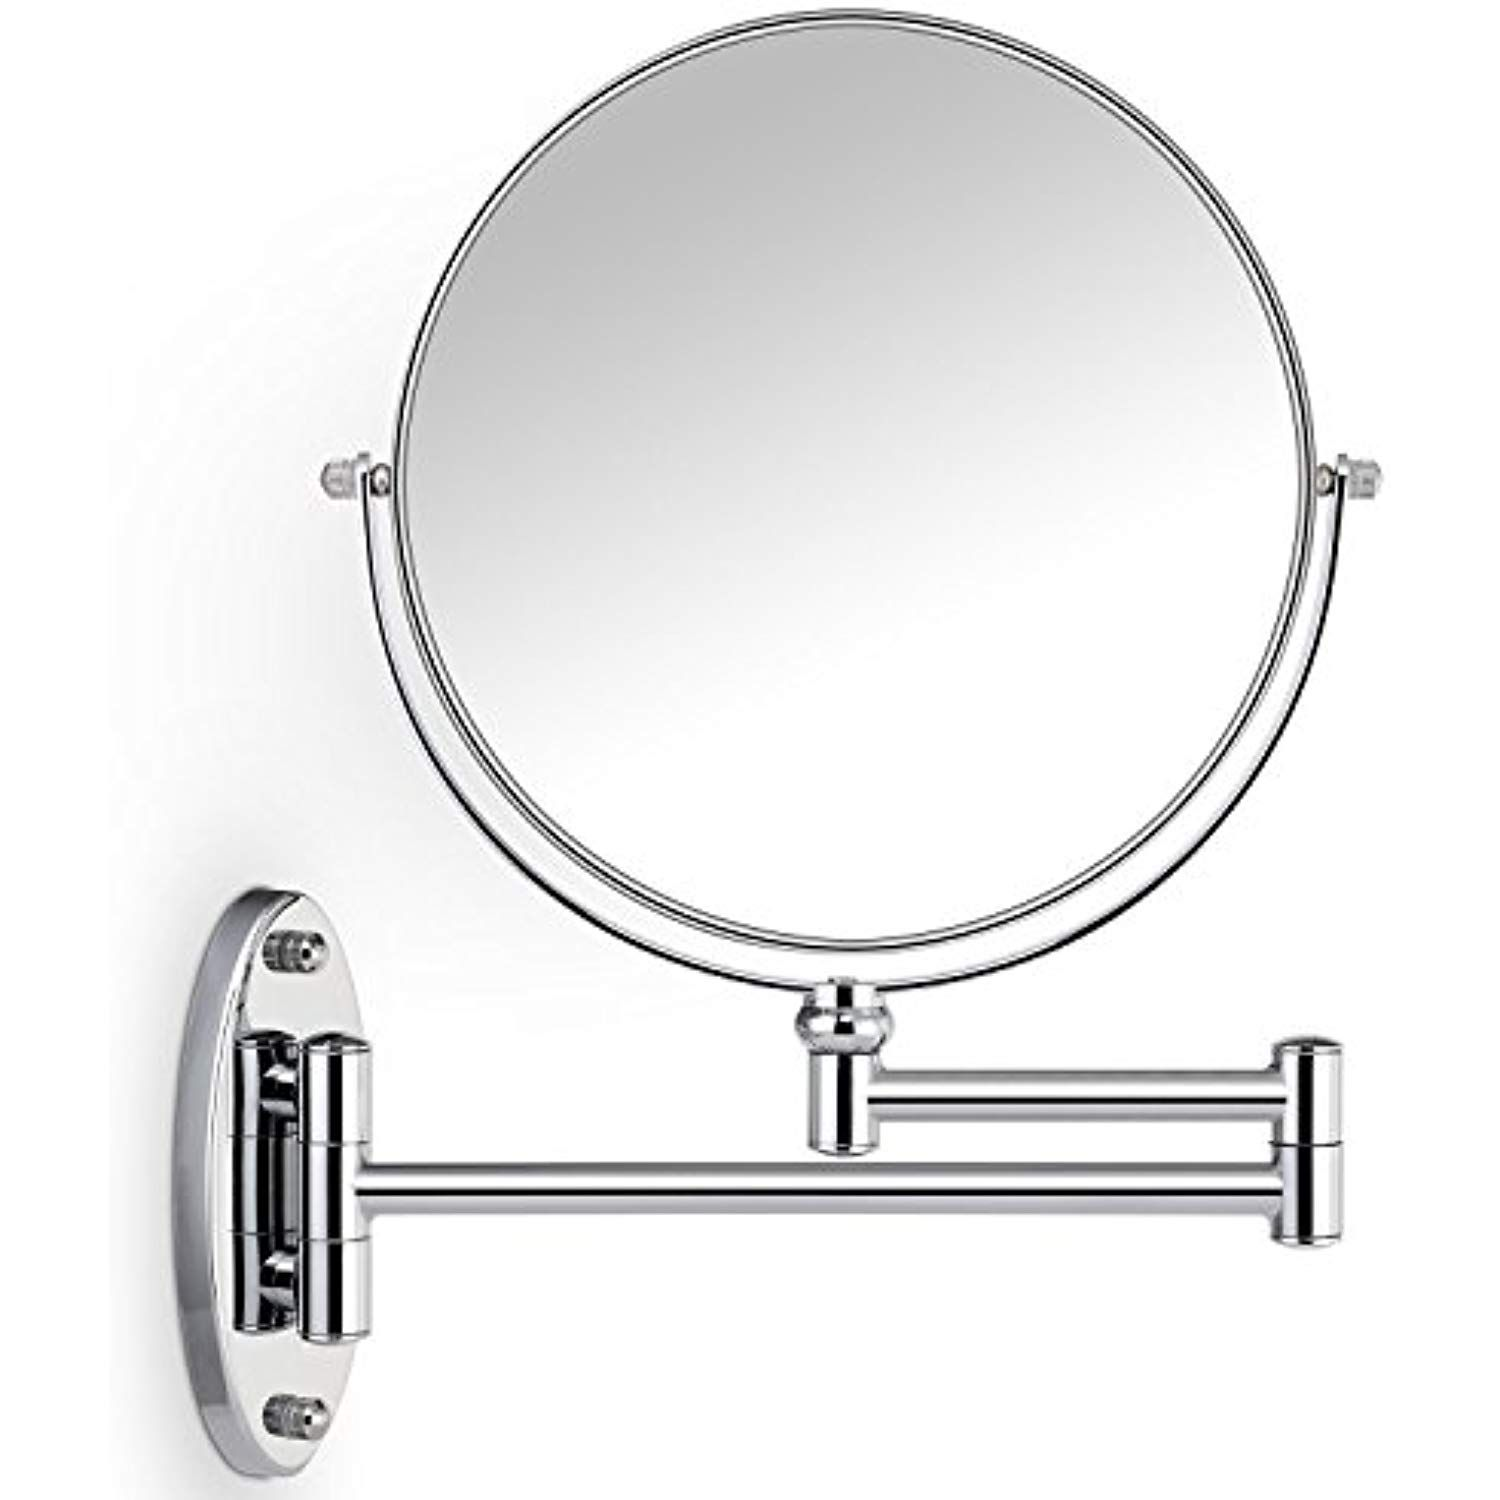 Cosprof Bathroom Mirror 10x 1x Magnification Double Sided 8 Inch Wall Mounted Vanity Magnifying Mirr Wall Mounted Makeup Mirror Magnifying Mirror Makeup Mirror